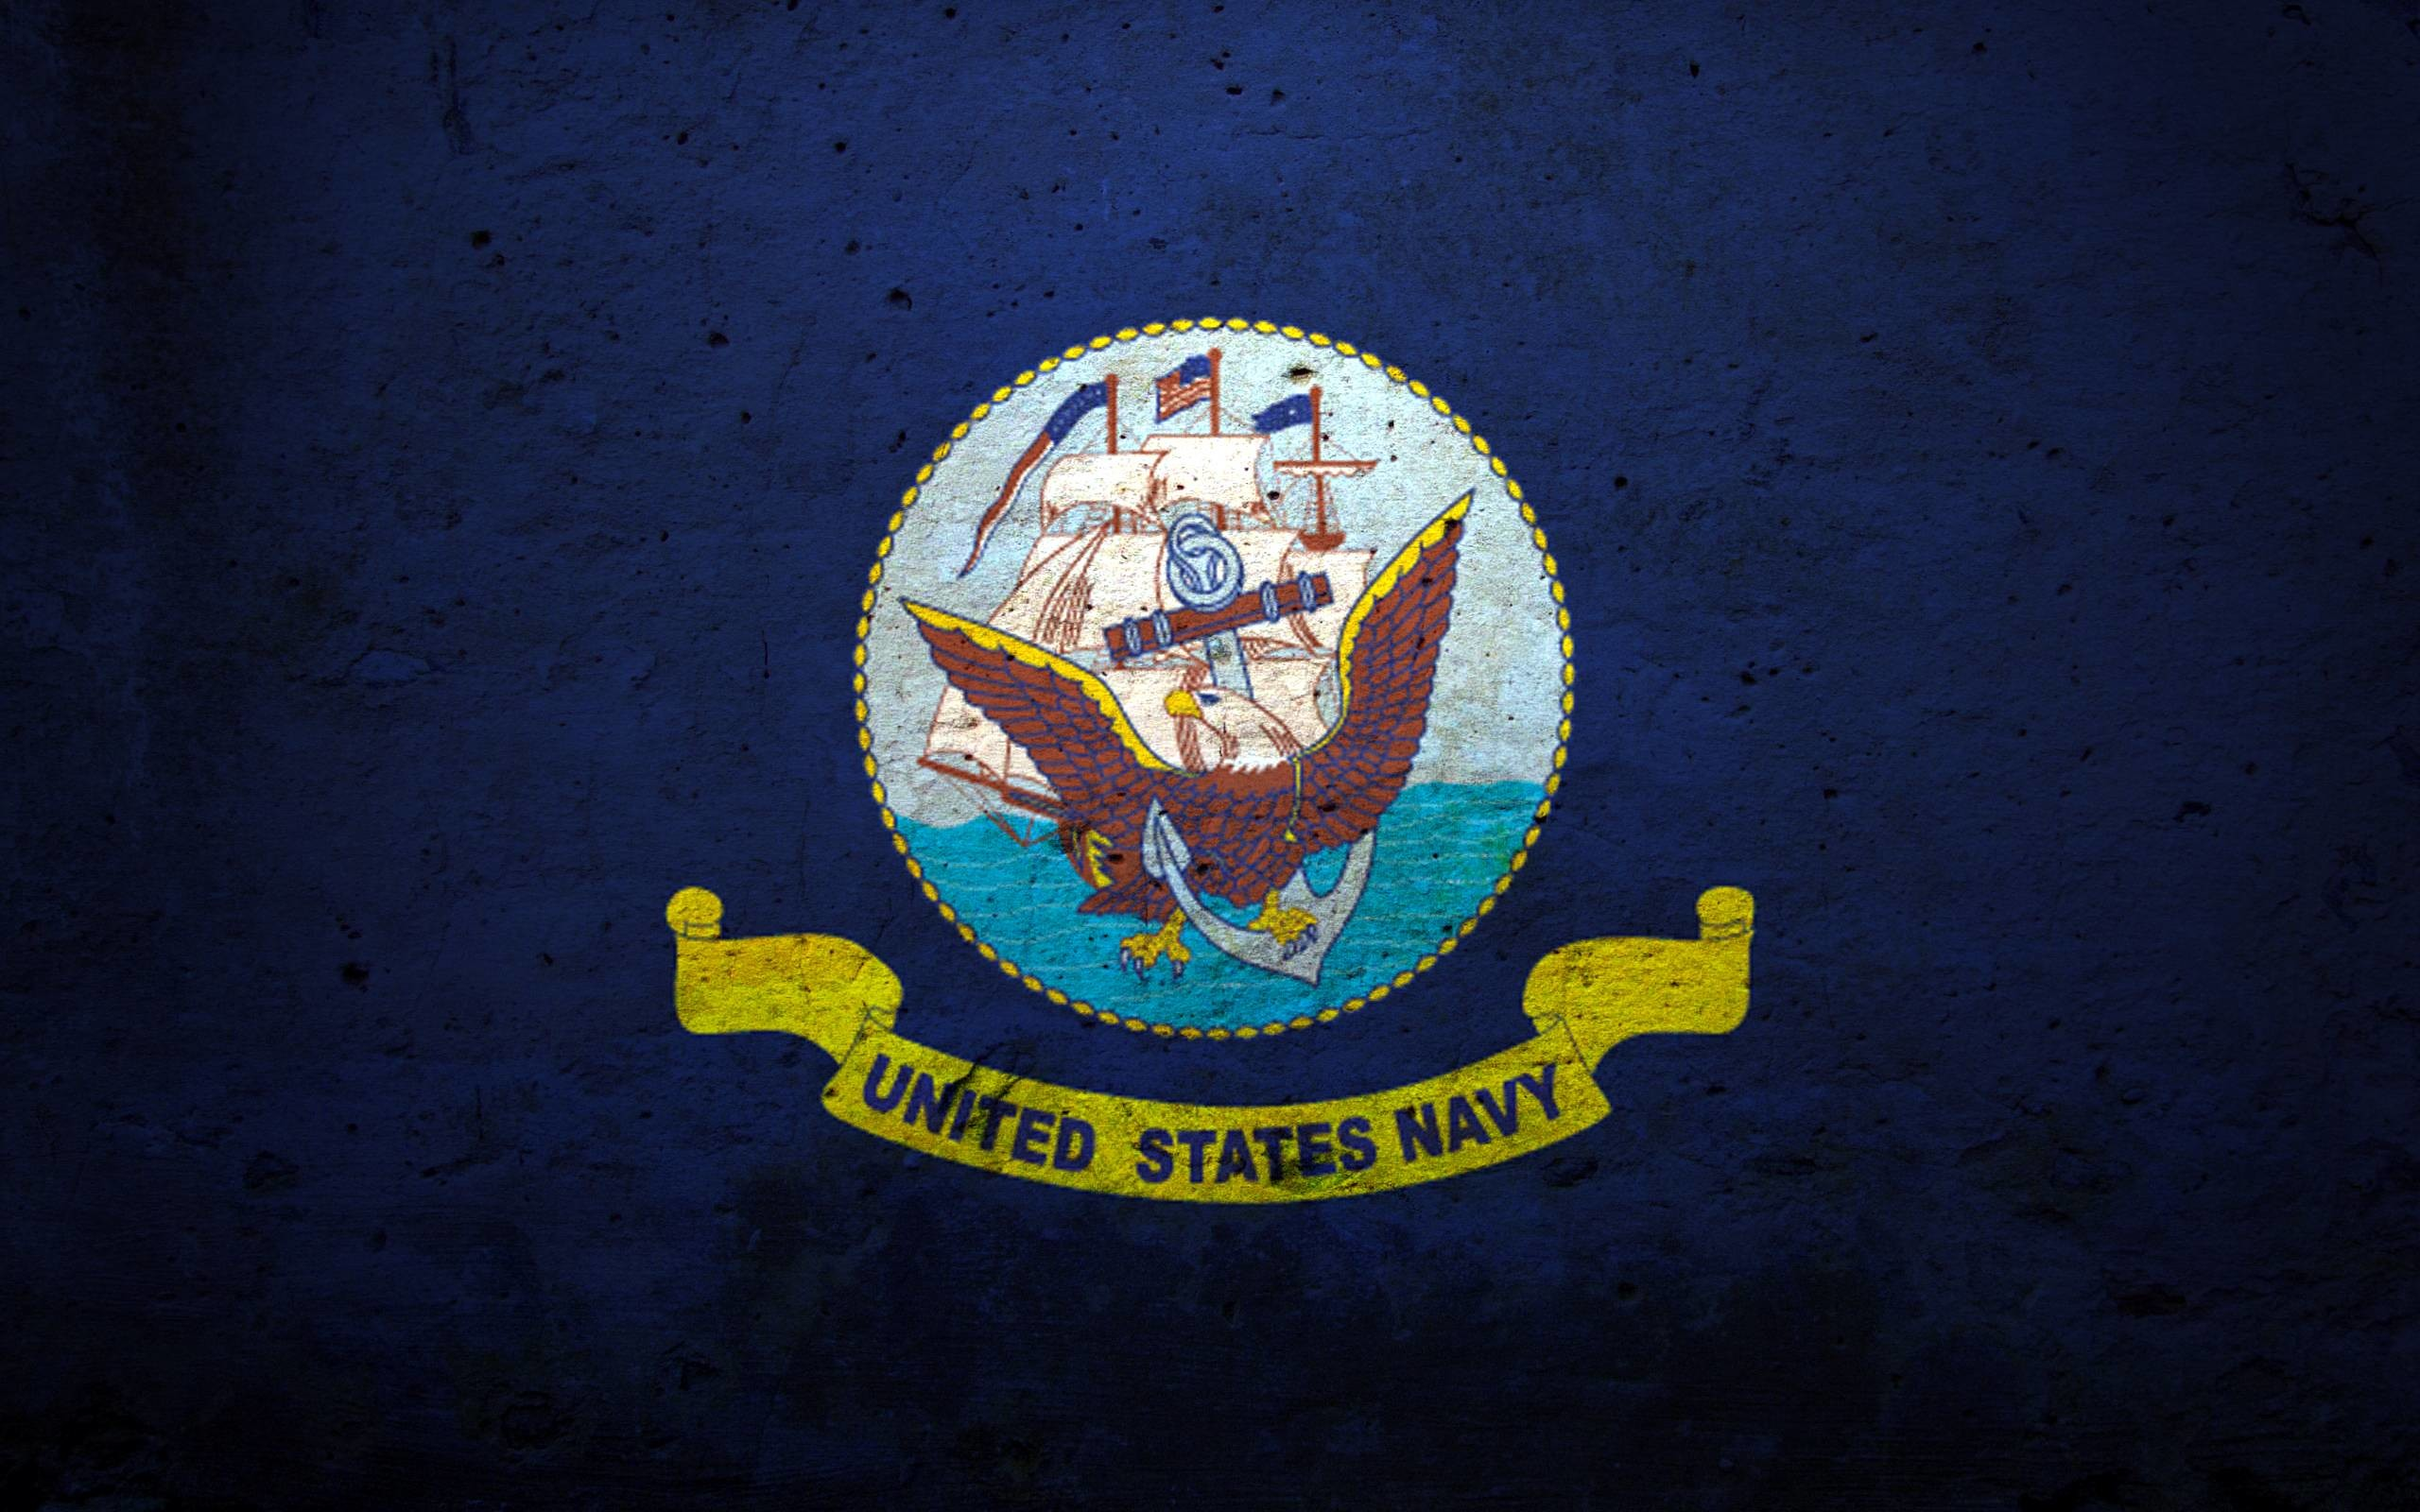 2560x1600 Us Navy Backgrounds 2560A 1600 High Definition Wallpaper